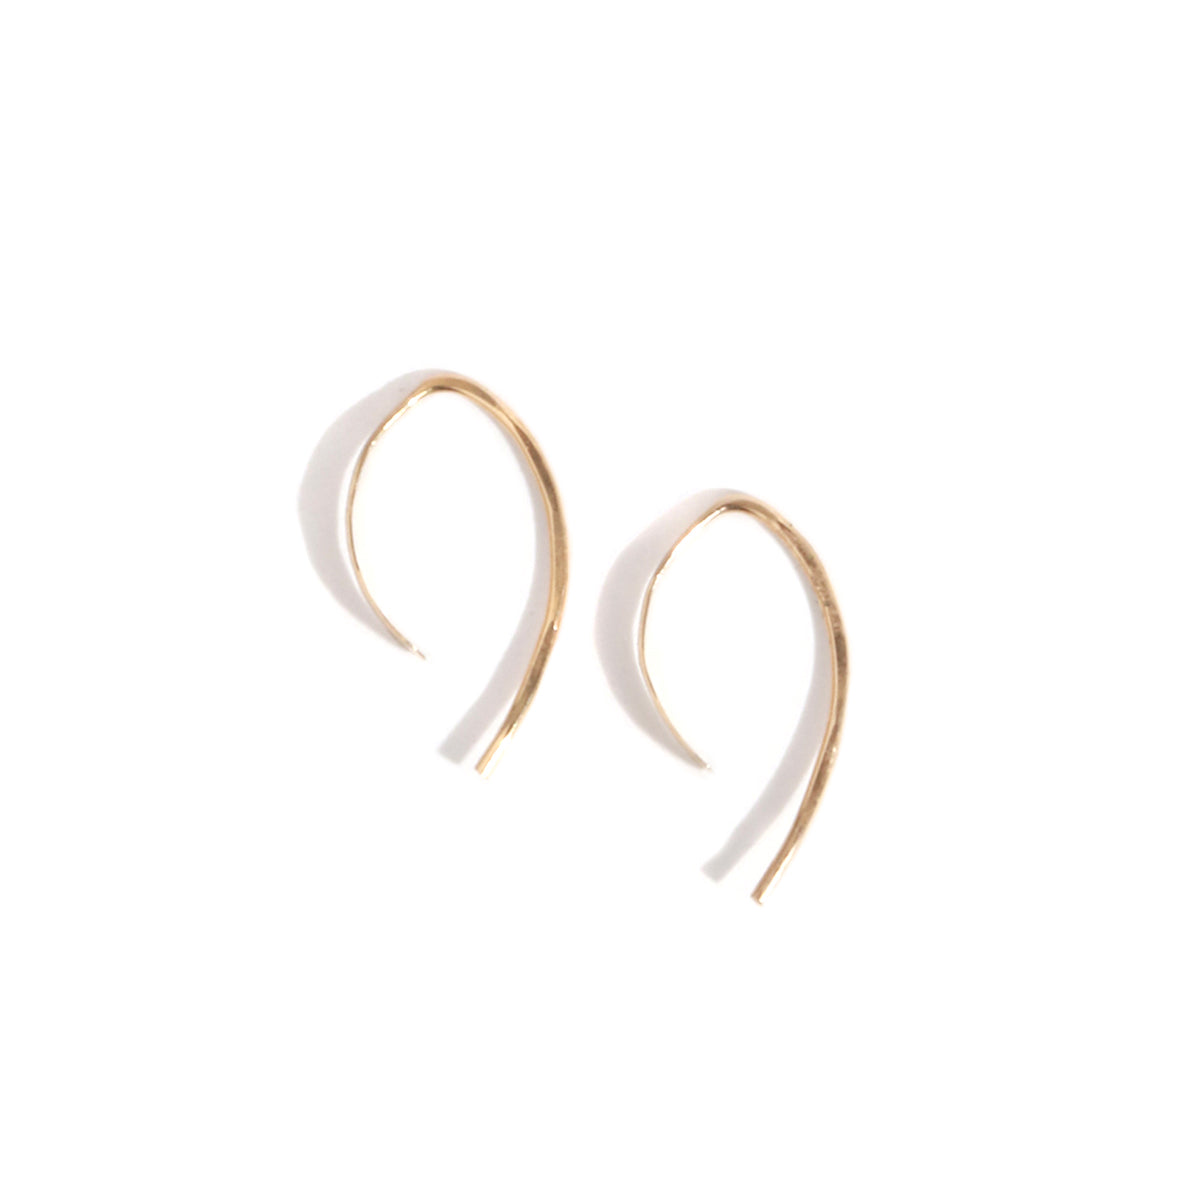 Wishbone hoops - 1/2 inch - Melissa Joy Manning Jewelry